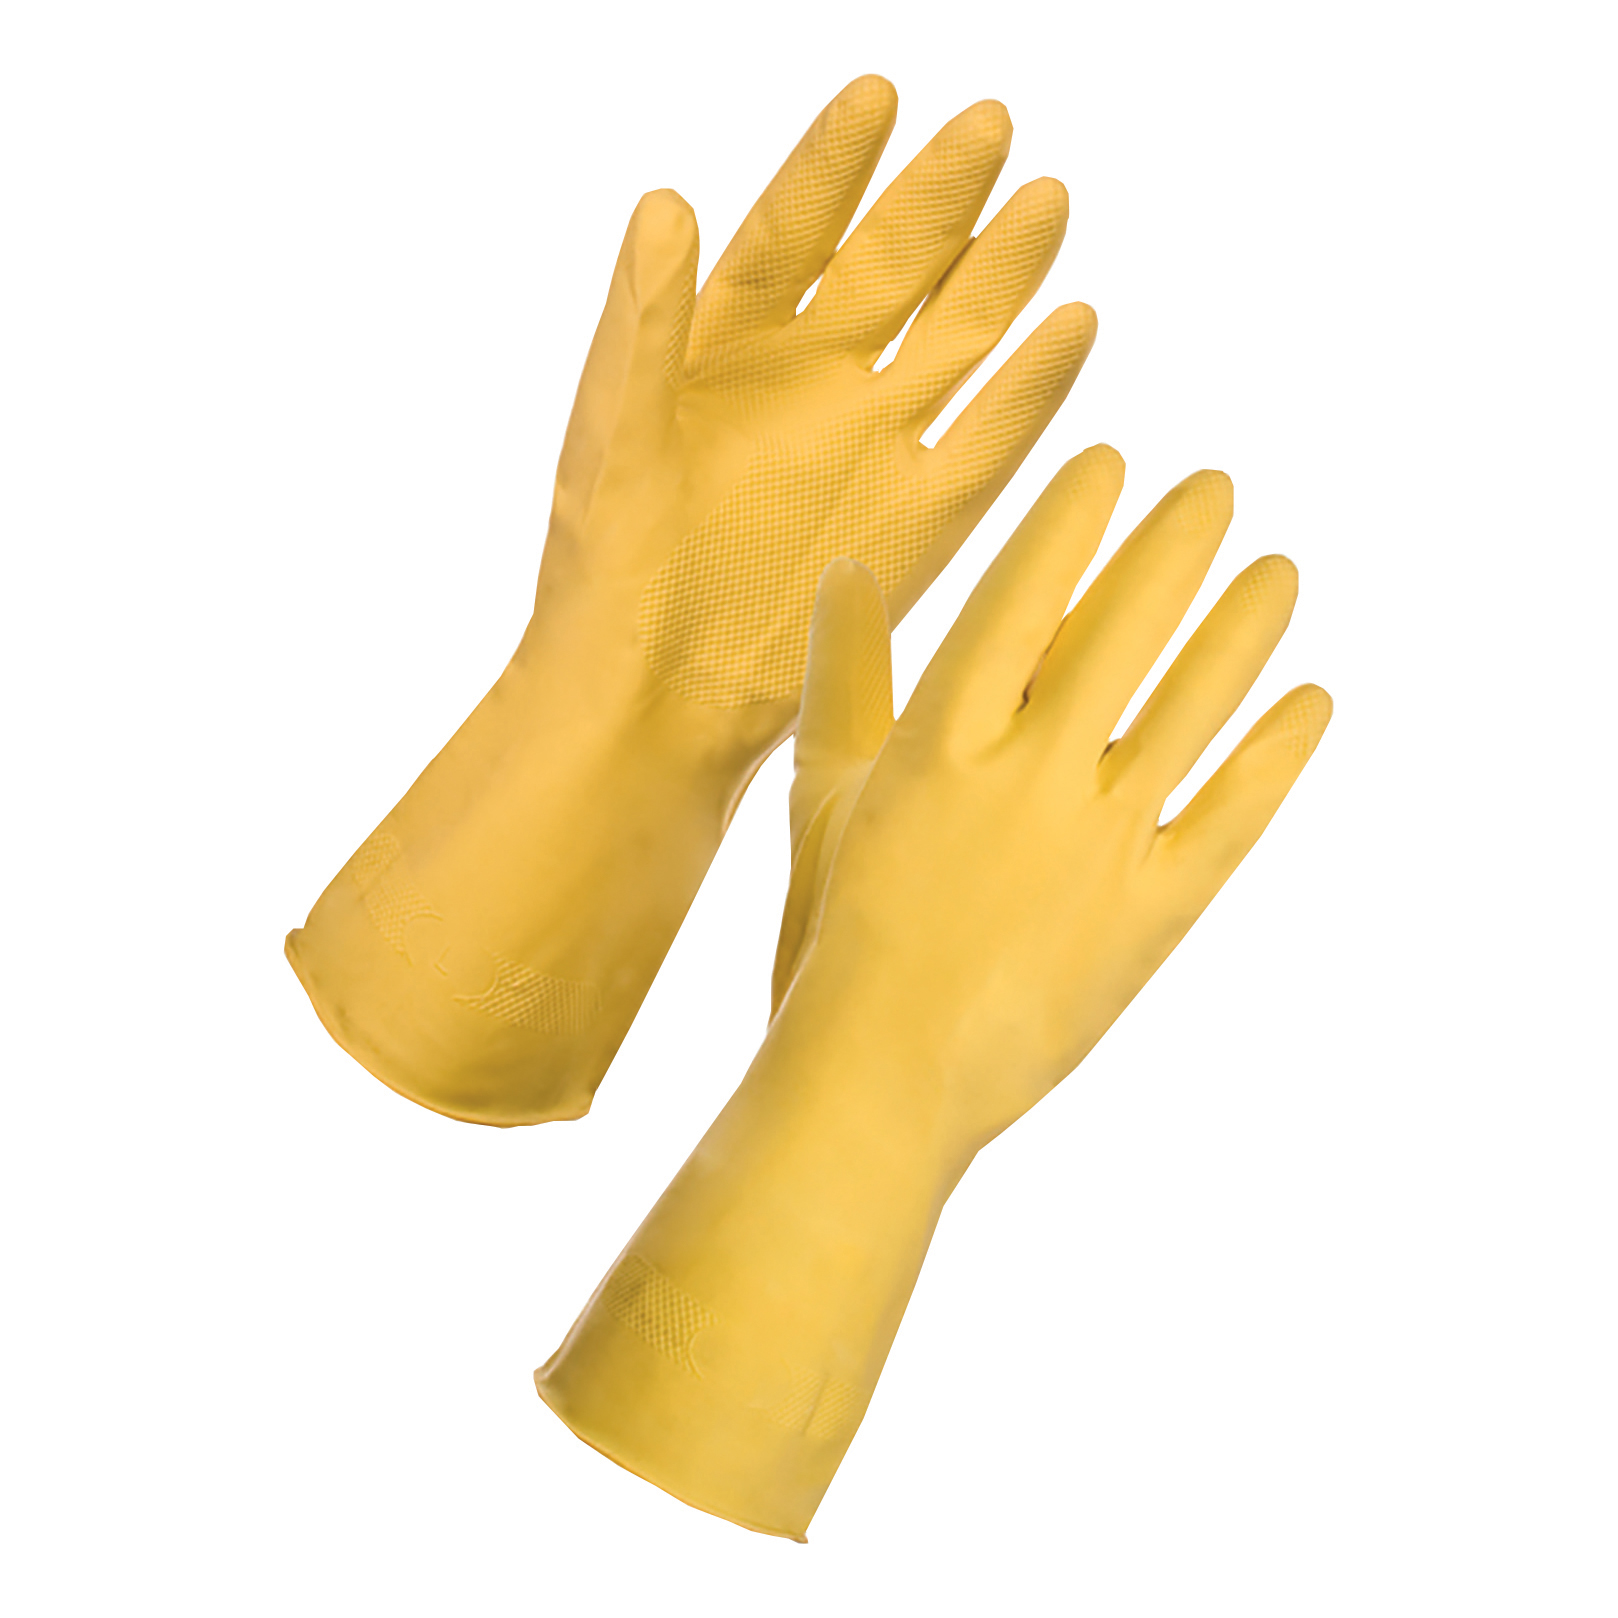 Yellow Rubber Gloves Medium Pair 13342